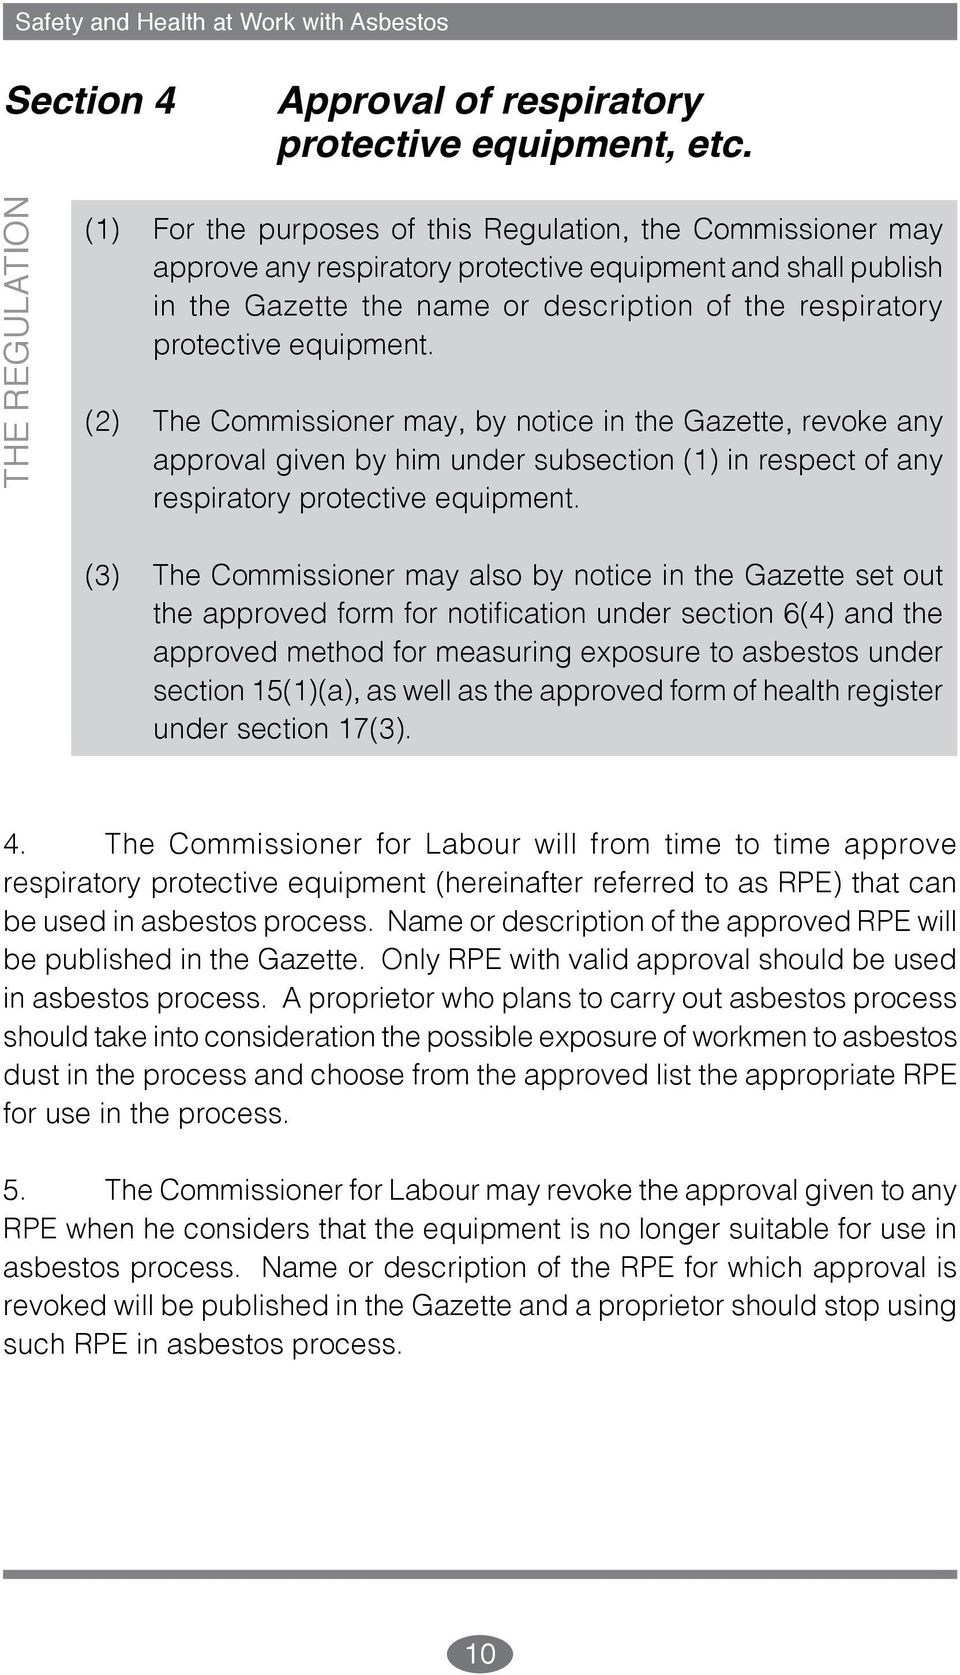 protective equipment. (2) The Commissioner may, by notice in the Gazette, revoke any approval given by him under subsection (1) in respect of any respiratory protective equipment.